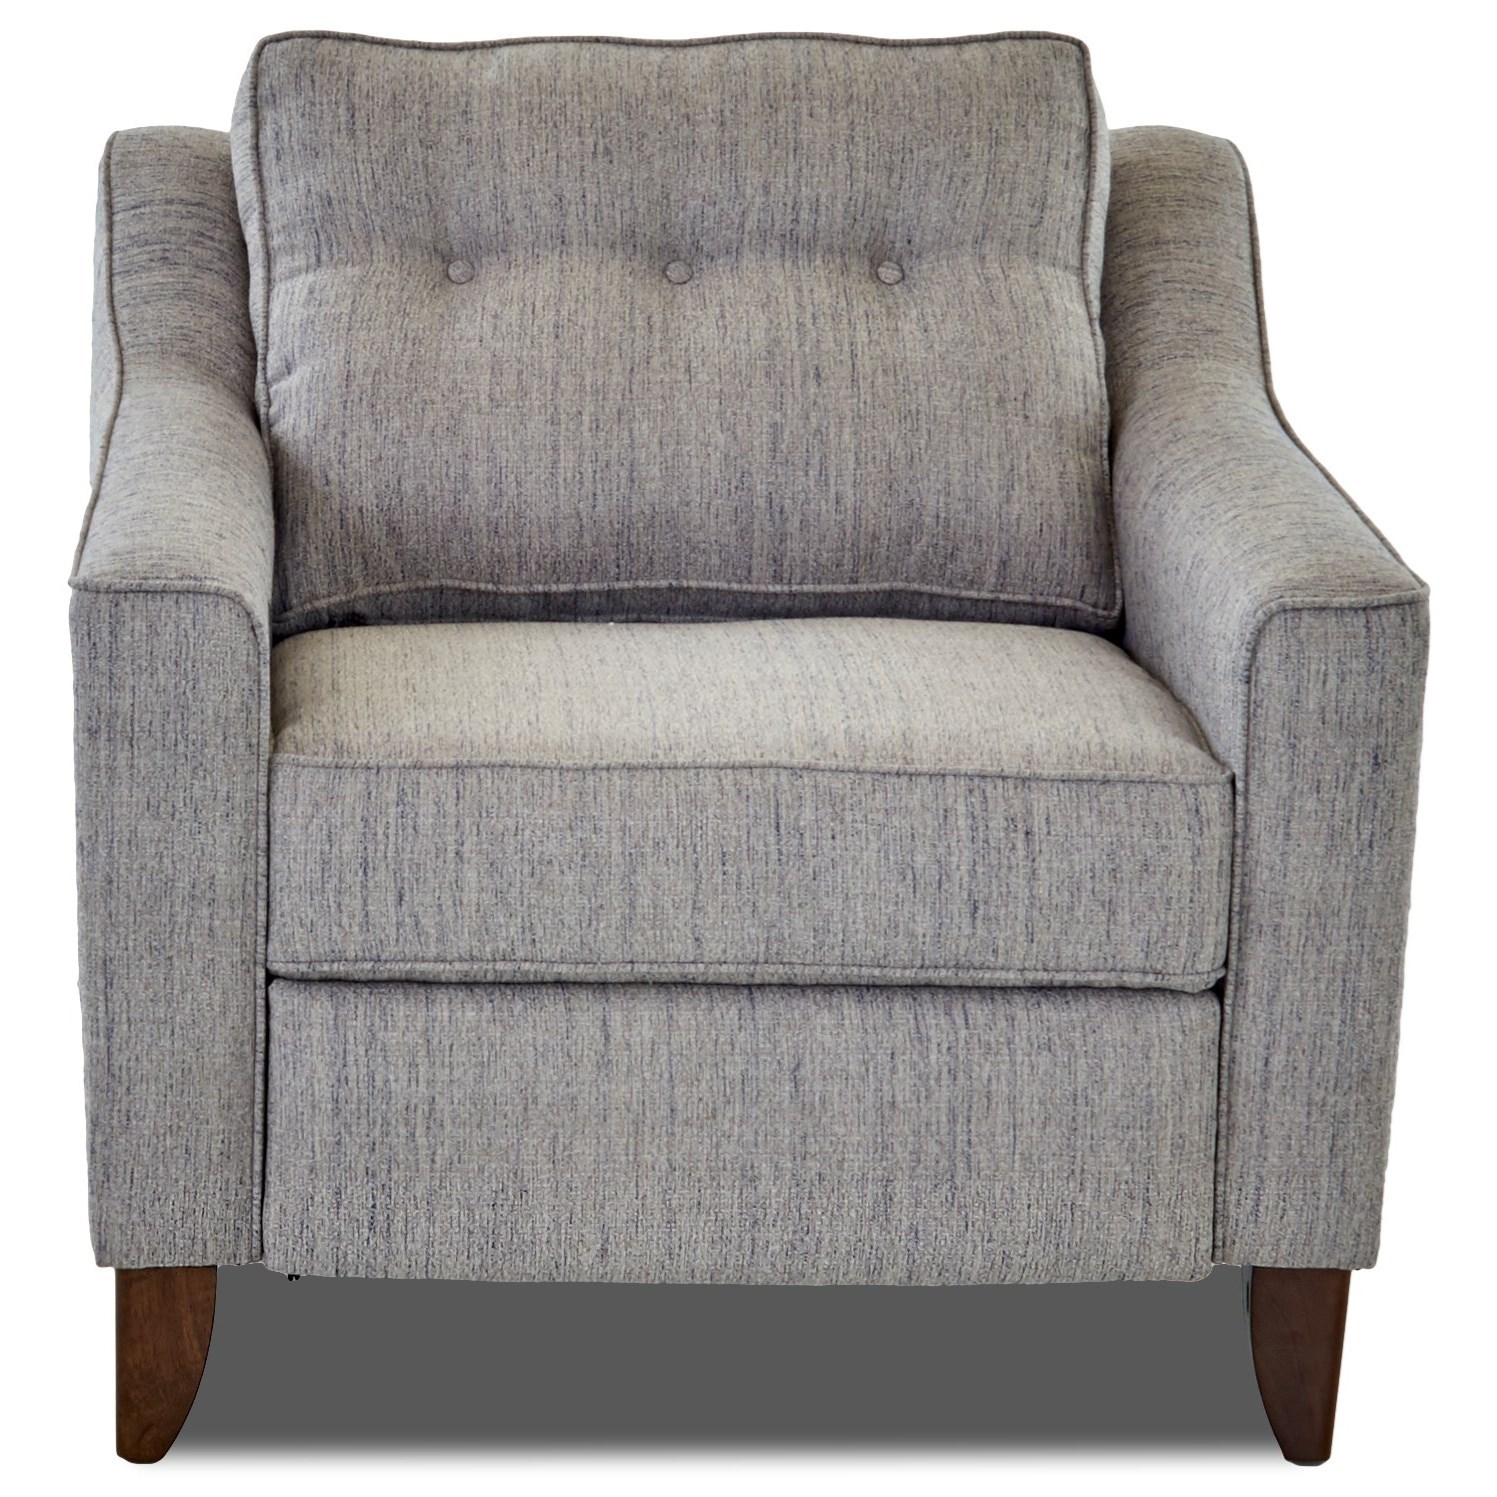 Audrina Power Reclining Chair by Klaussner at Value City Furniture